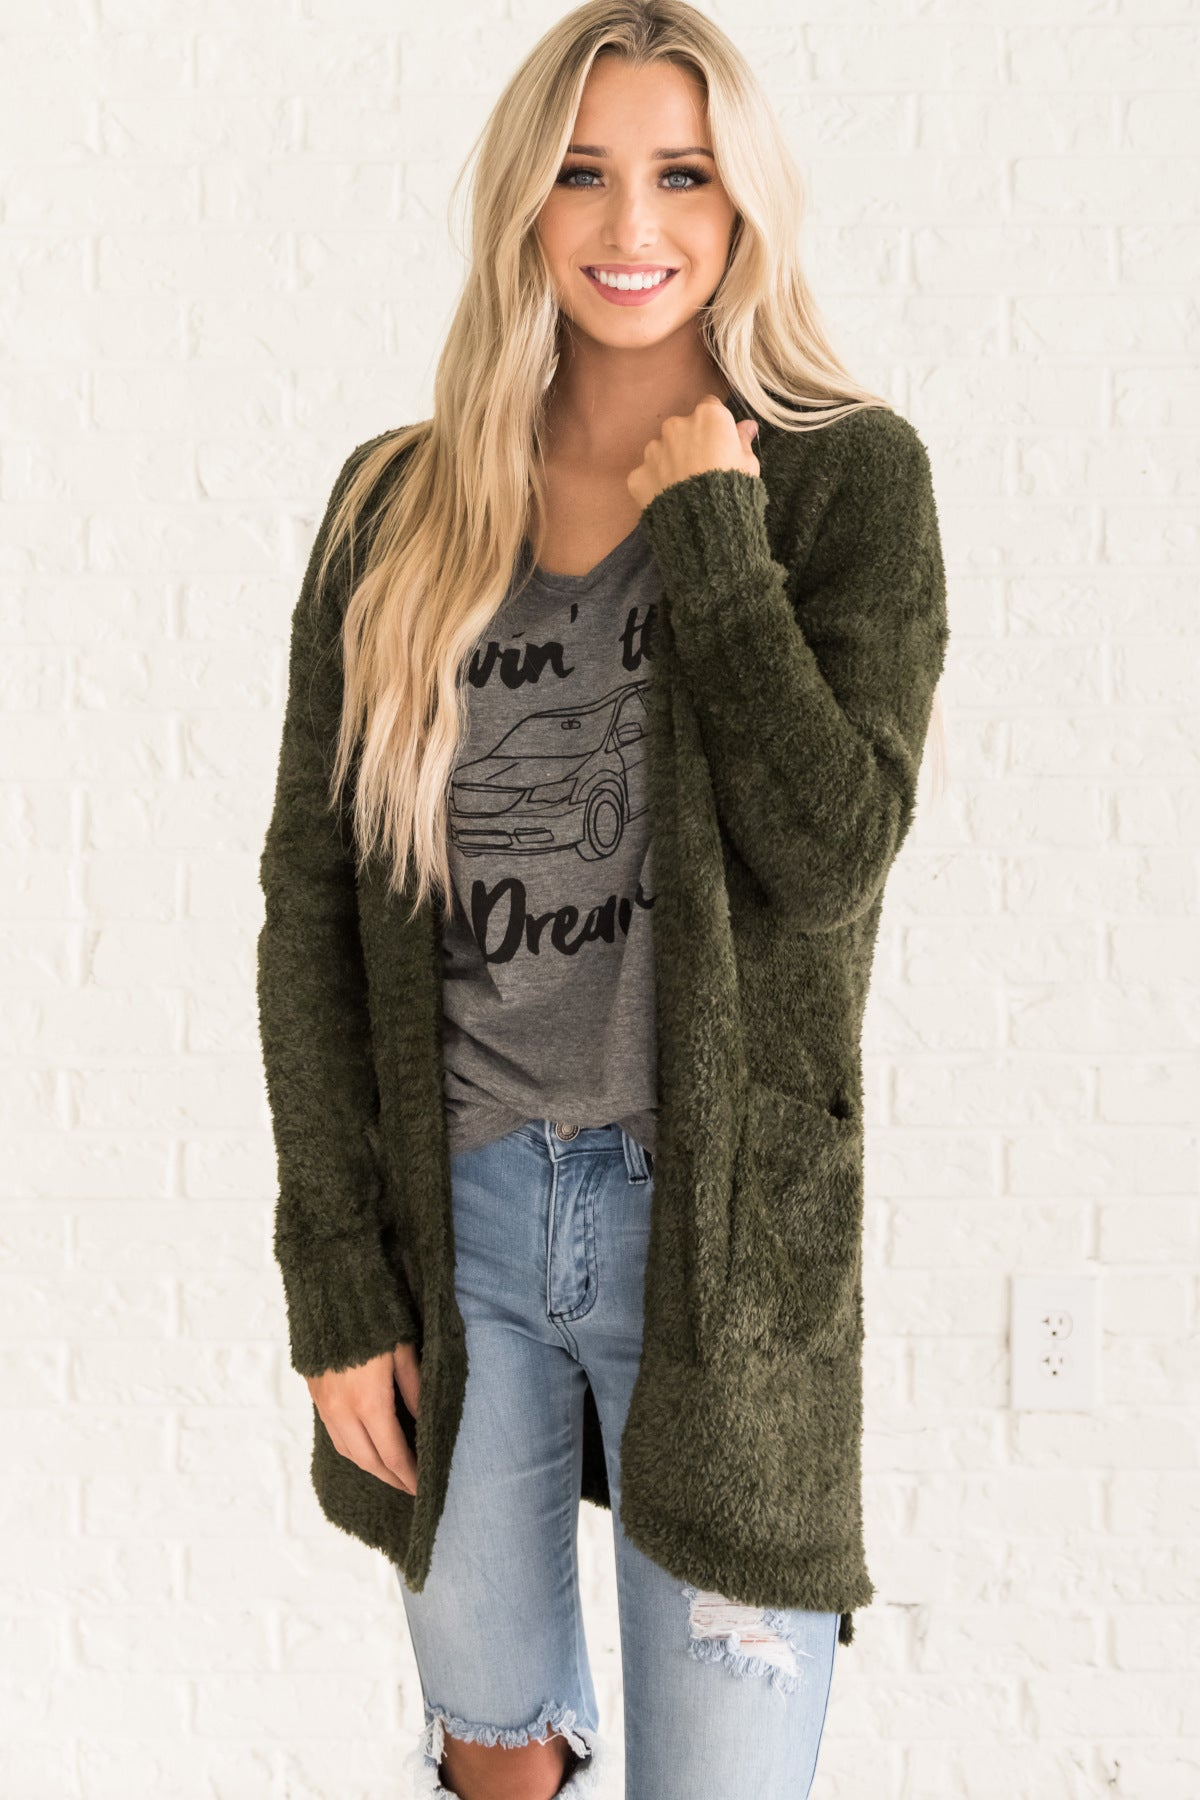 93e135a9b5 Olive Green Fuzzy Soft Knit Cardigan Sweater with Pockets